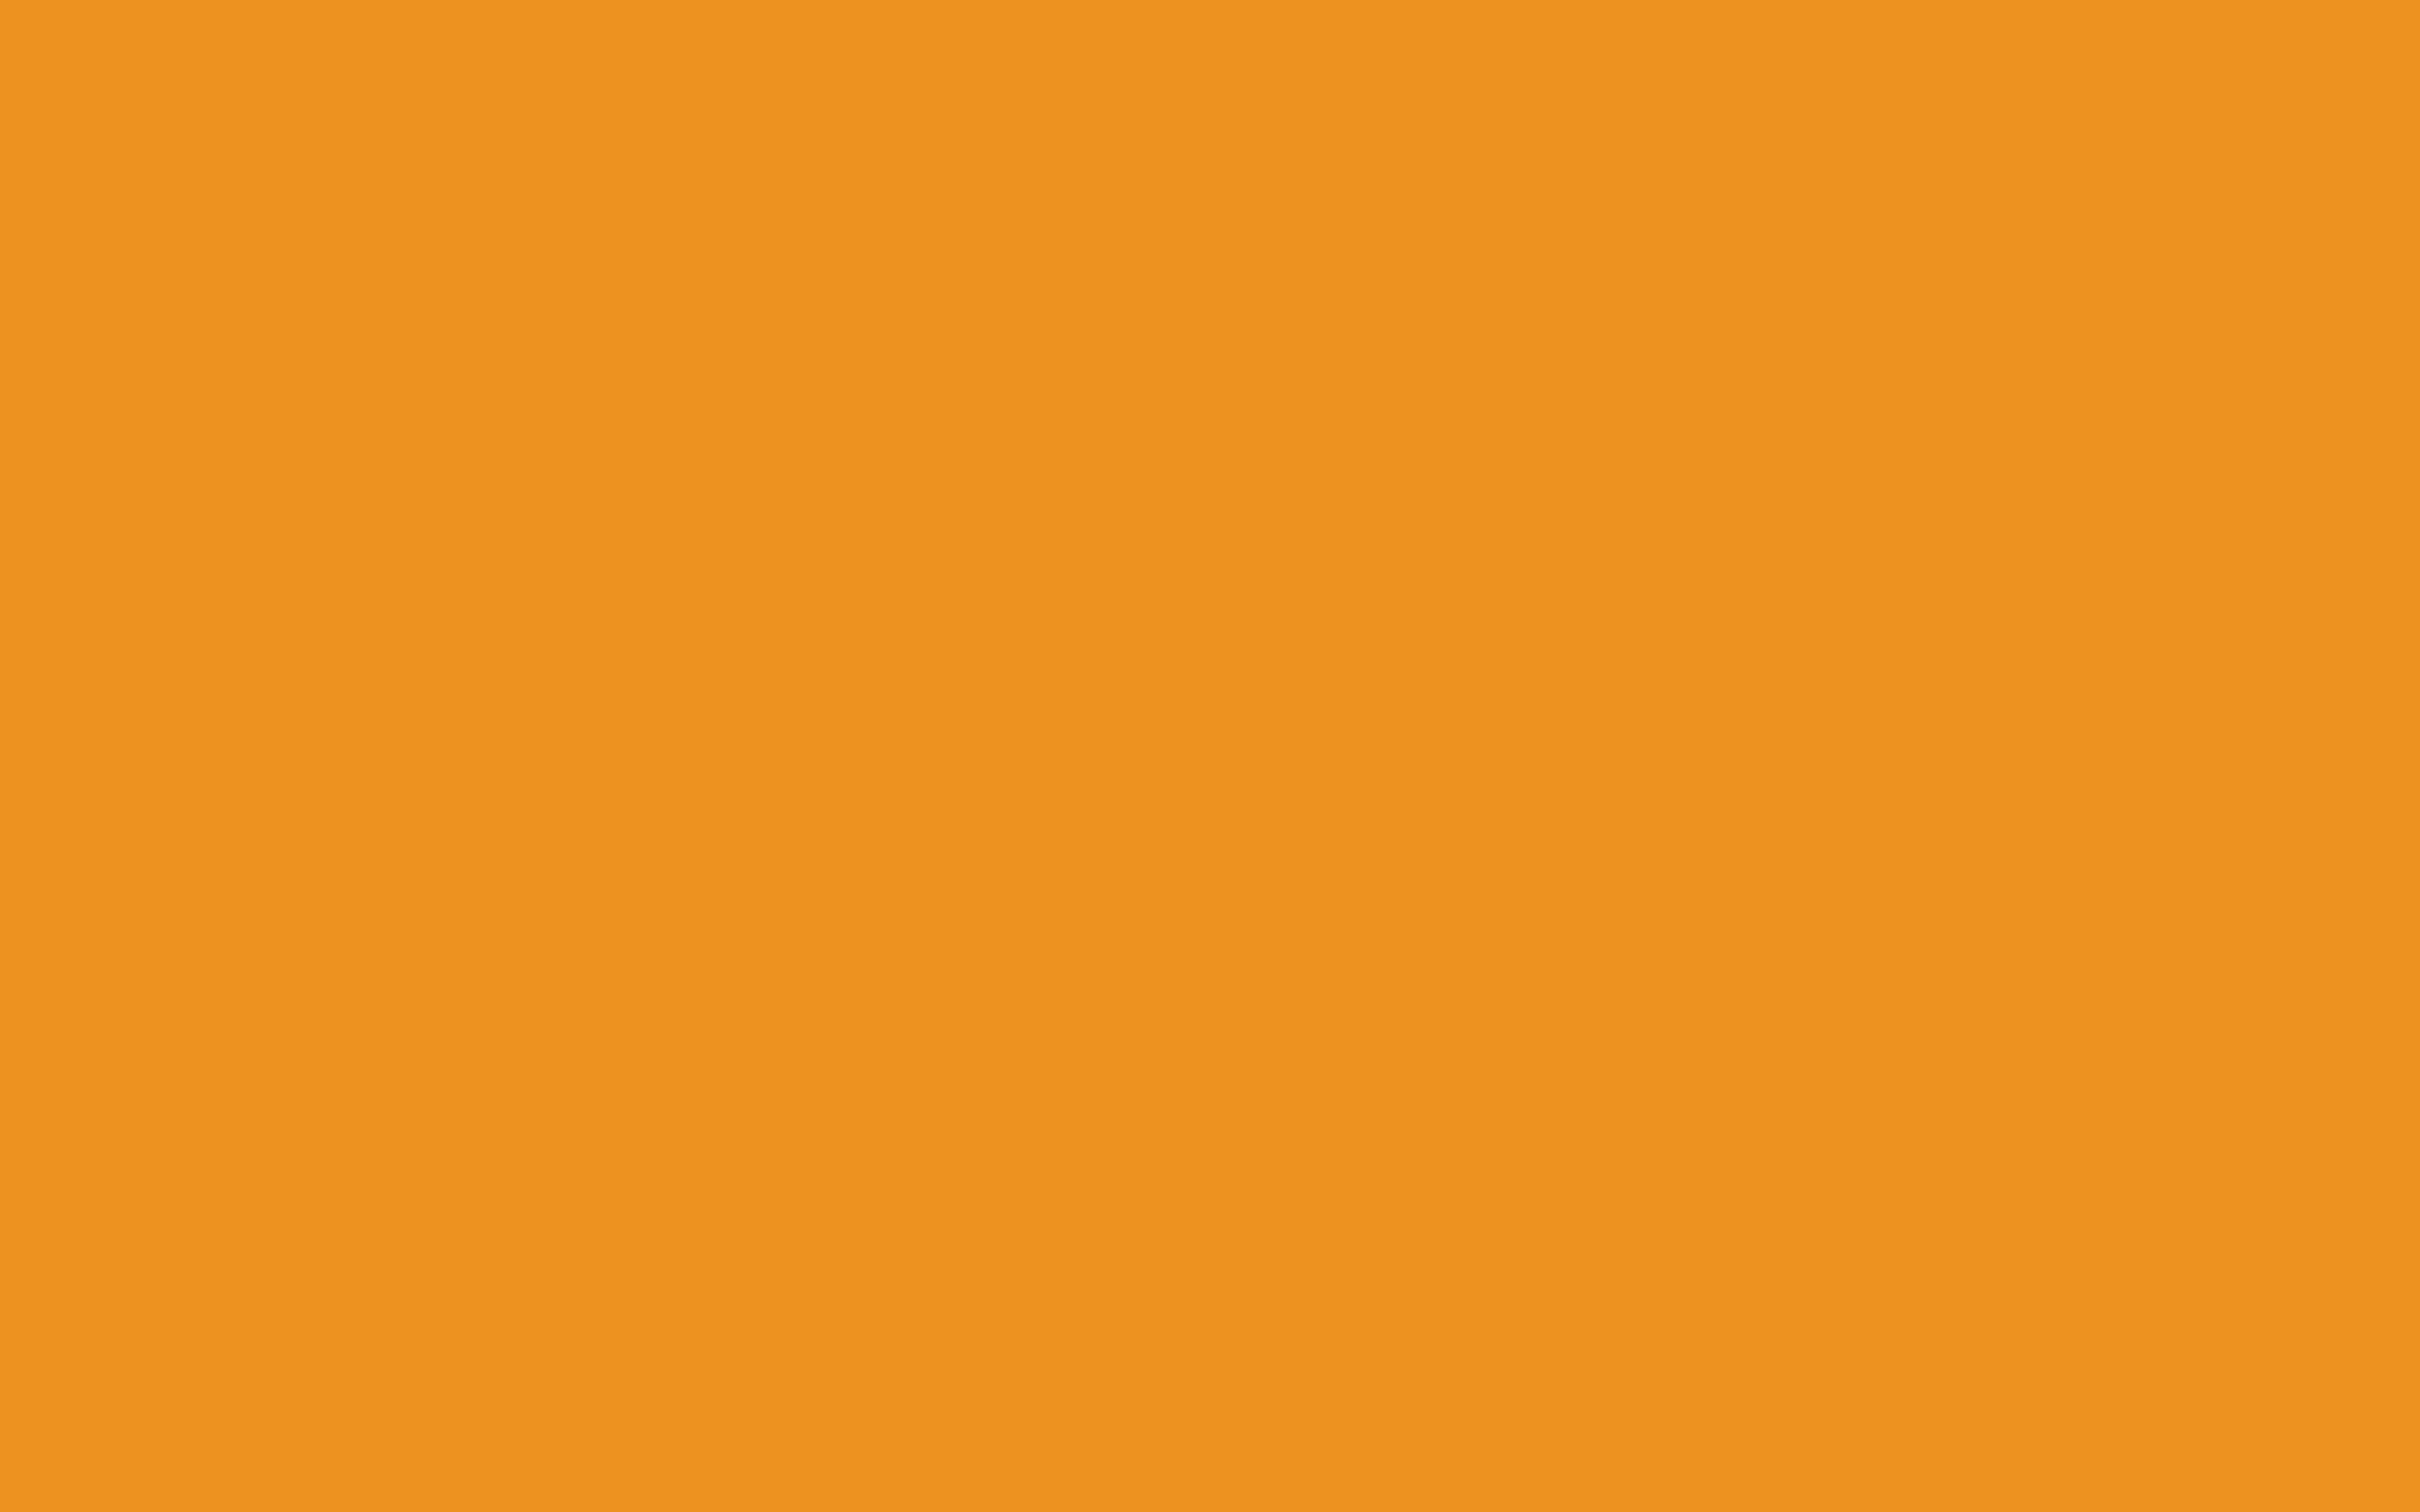 2880x1800 Carrot Orange Solid Color Background